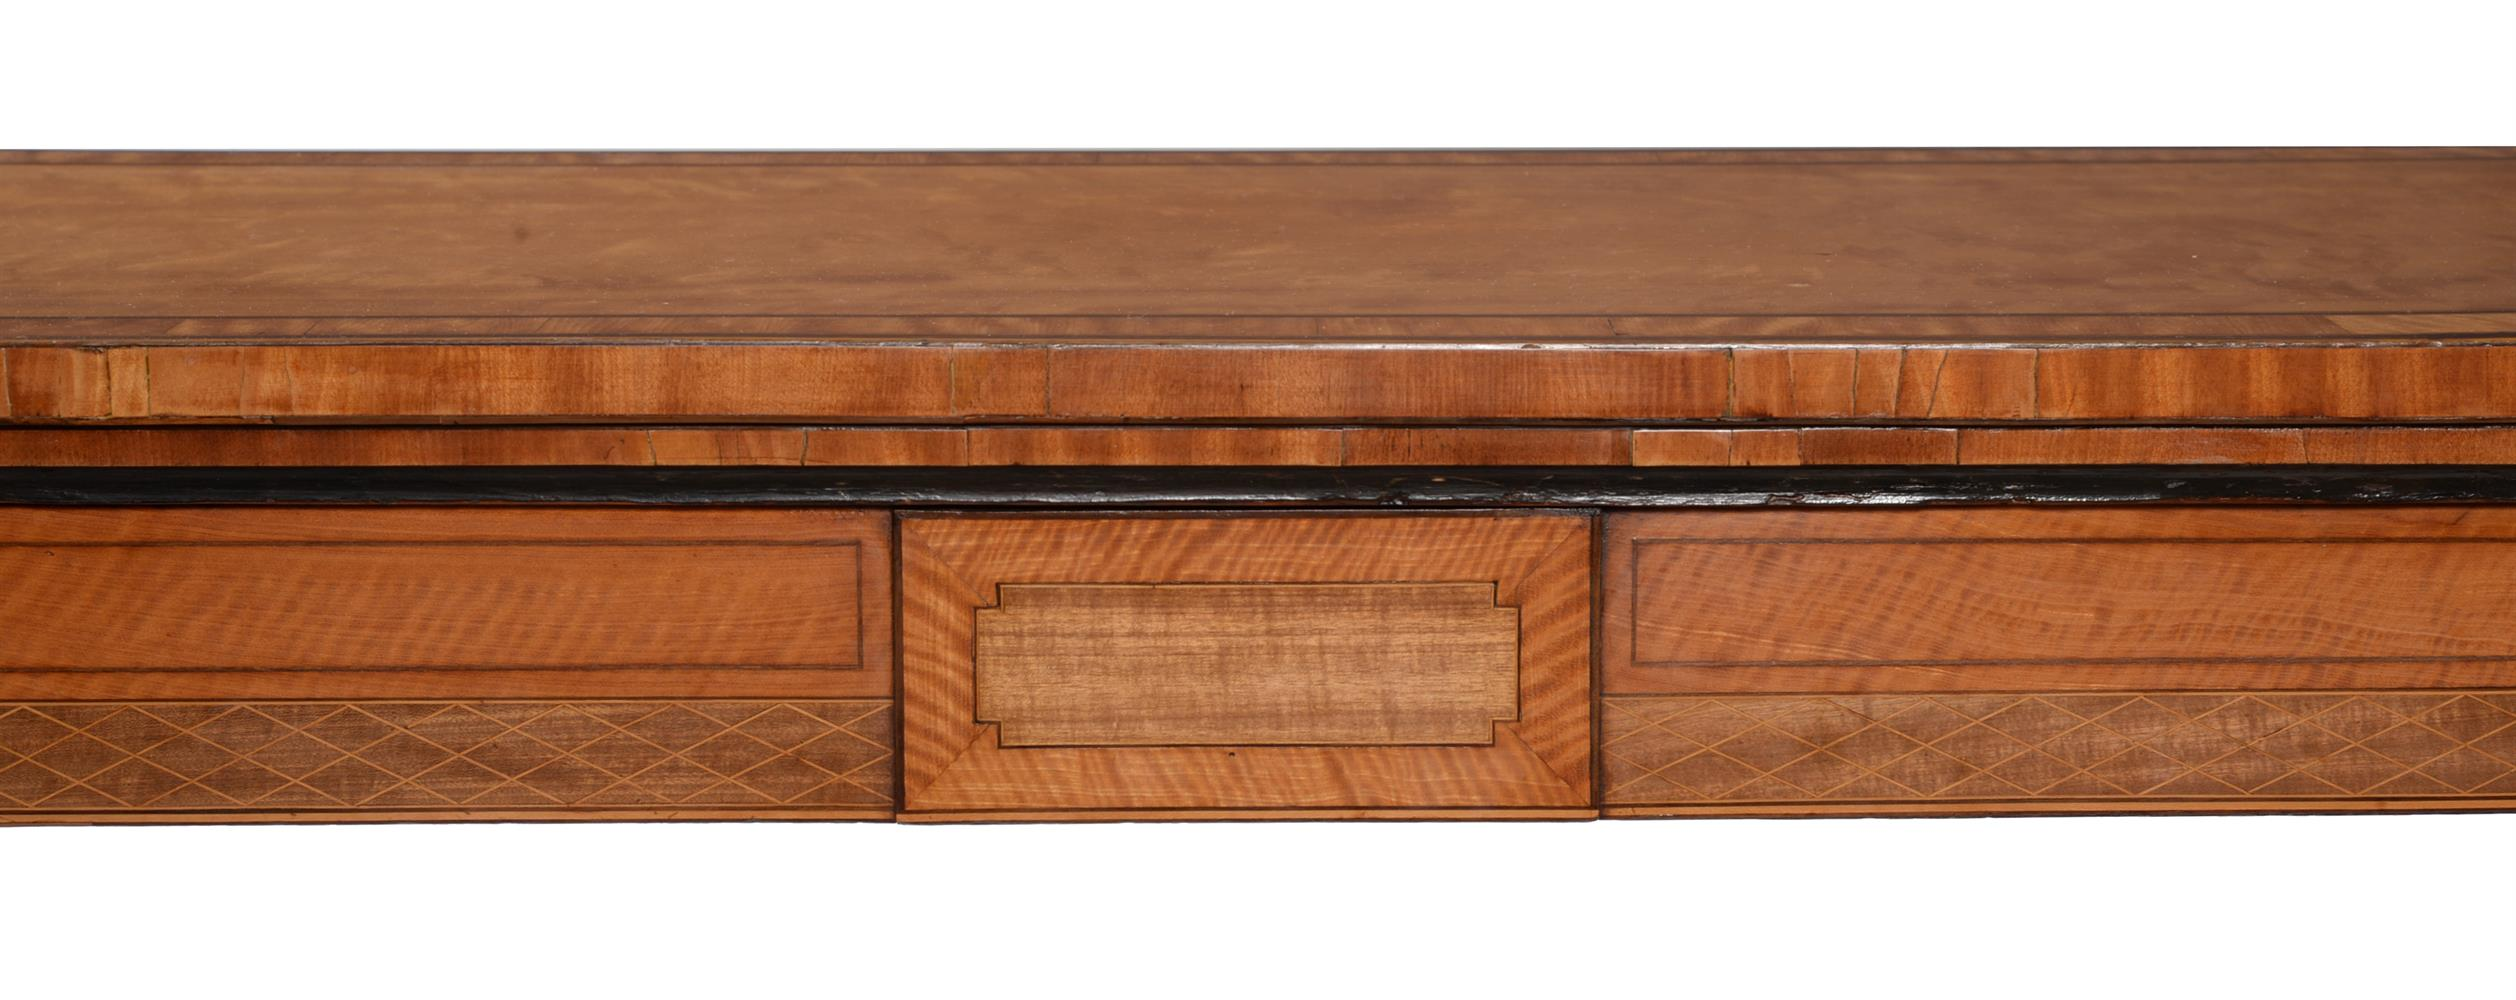 Y A GEORGE III SATINWOOD, TULIPWOOD AND PURPLE HEART BANDED FOLDING CARD TABLE, CIRCA 1790 - Image 3 of 6